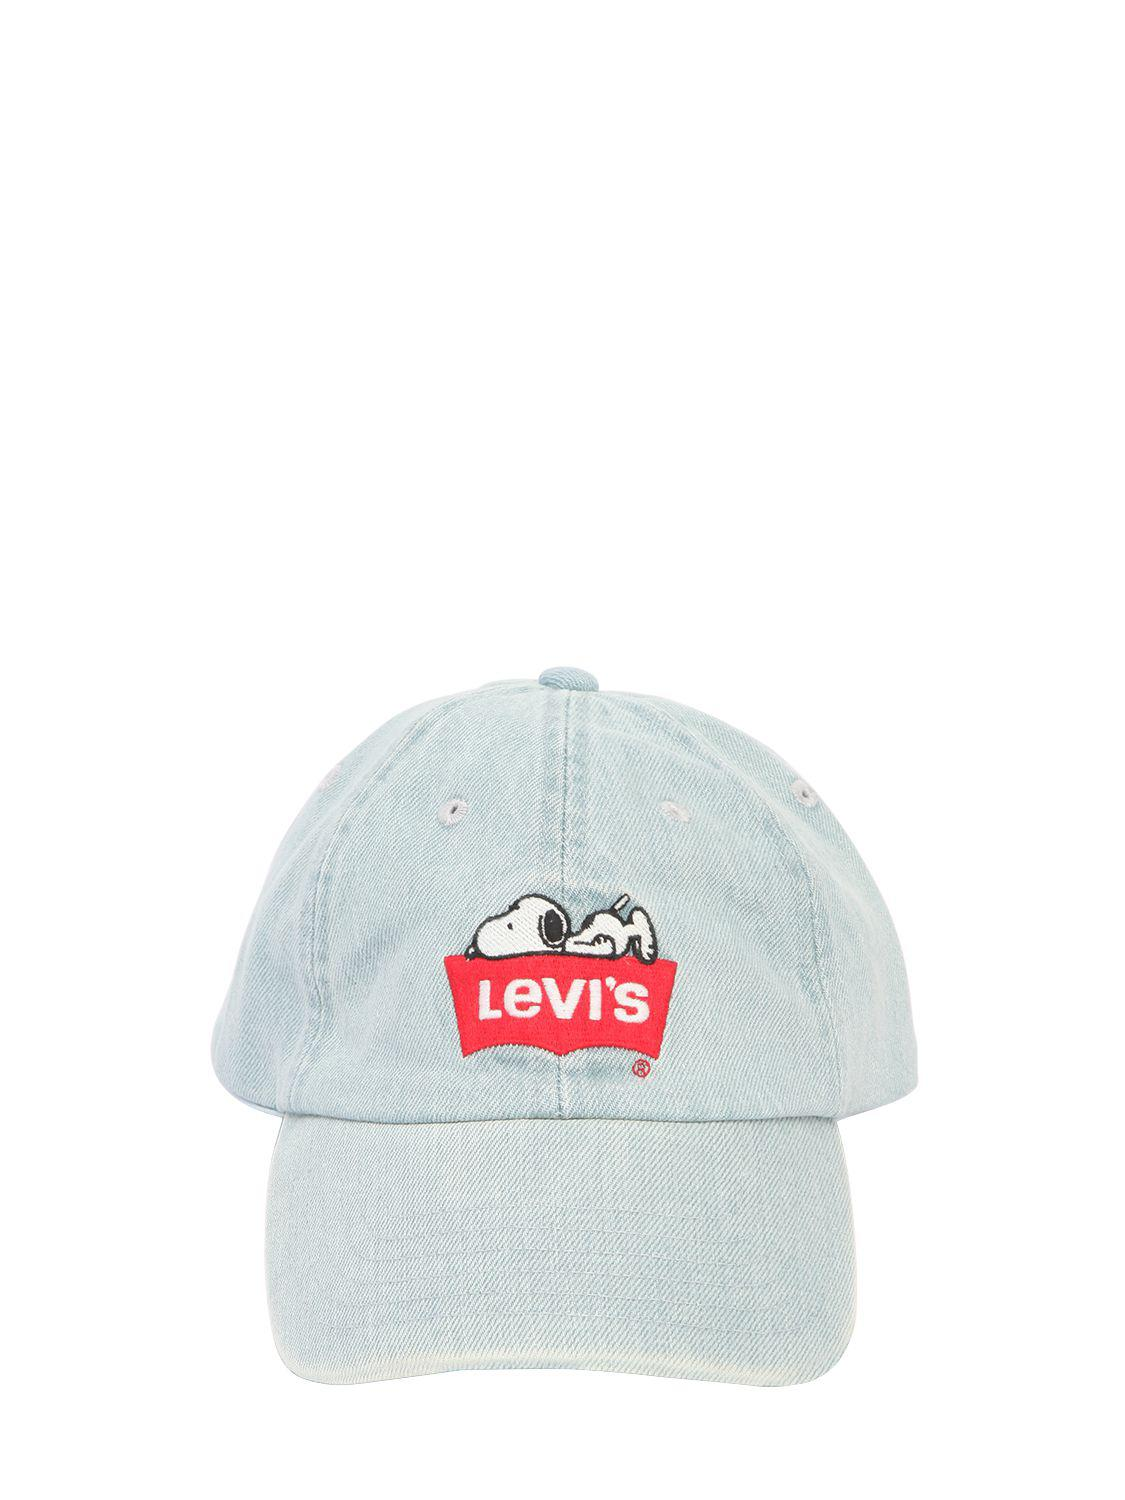 7f346118 Levi's Snoopy Embroidered Denim Baseball Hat in Blue for Men - Lyst